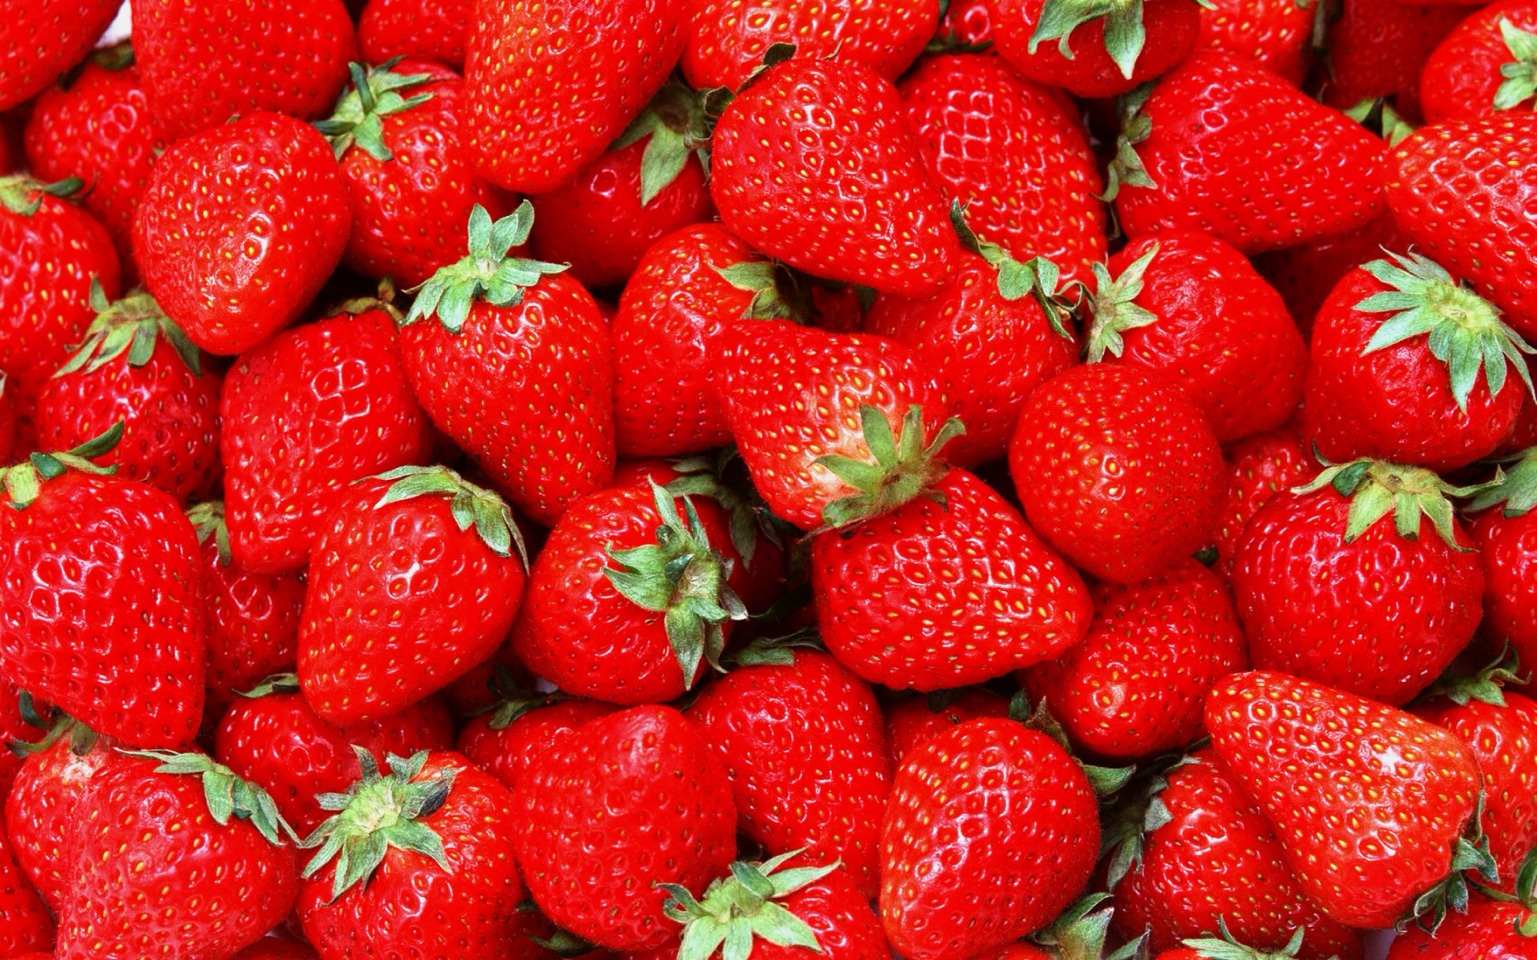 4-6 strawberries, depends on how sweet you would like it. You can cut off leaves it doesn't really matter it's going to get blended.